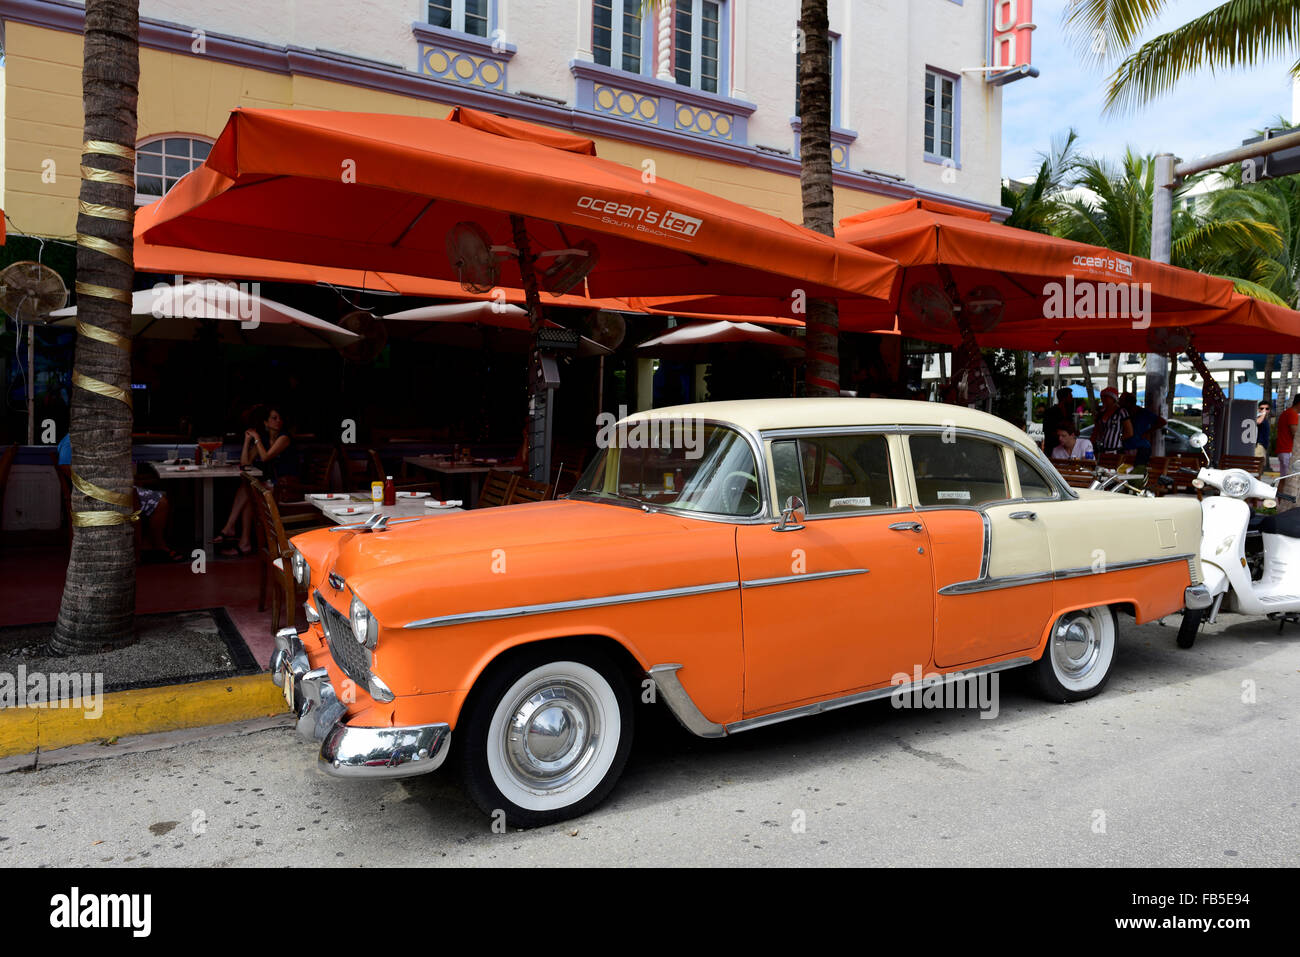 classic american vintage cars ocean drive miami beach stock photo 92934048 alamy. Black Bedroom Furniture Sets. Home Design Ideas